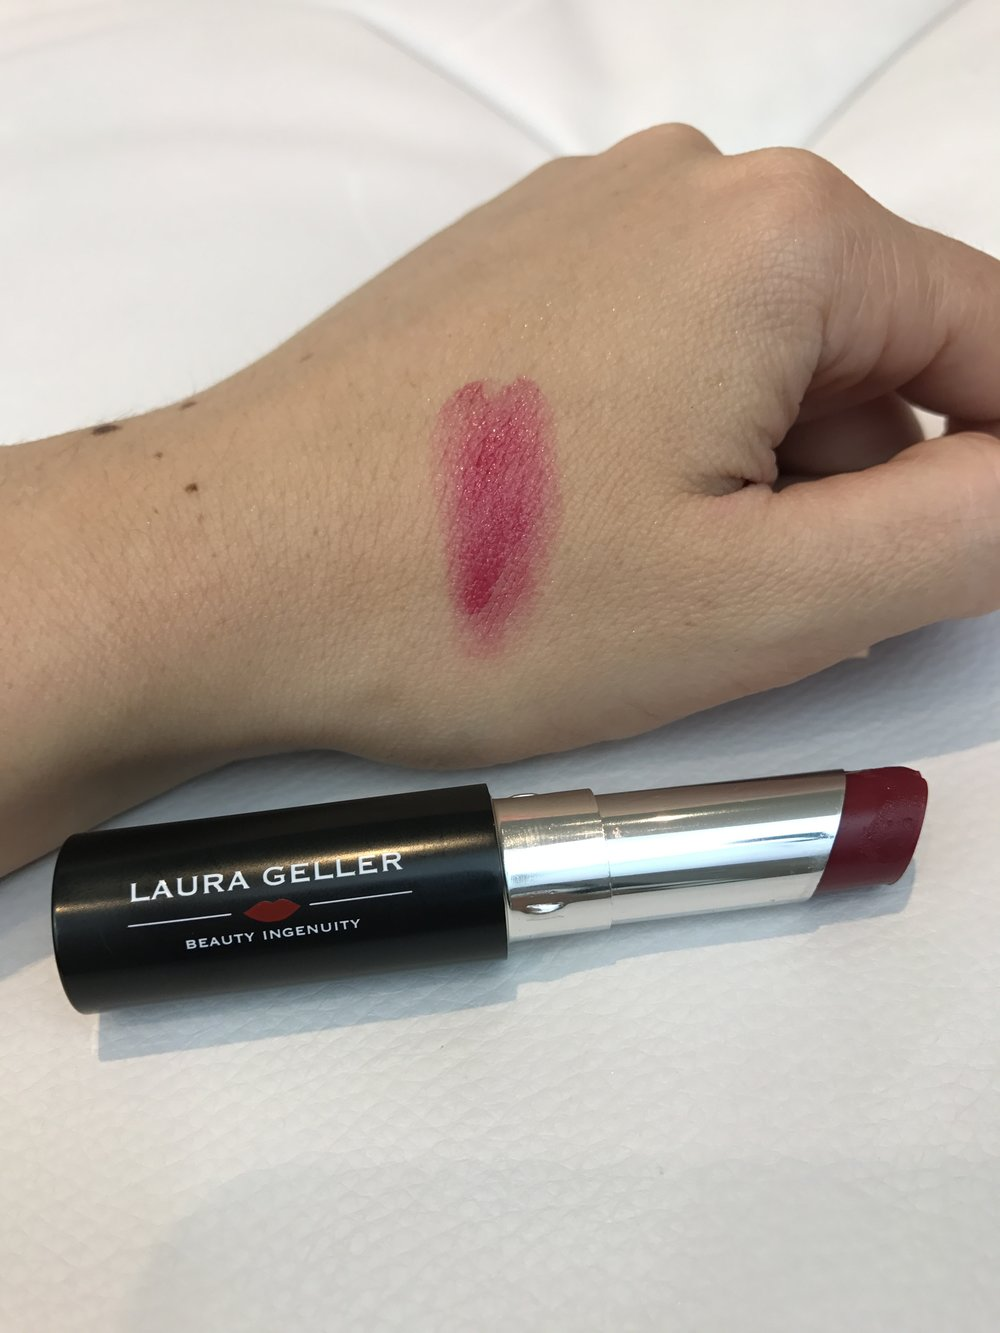 December Look Incredible Beauty Box - Laura Geller Creme Sheer Hydrating Lip Colour in Rich Pomegranate